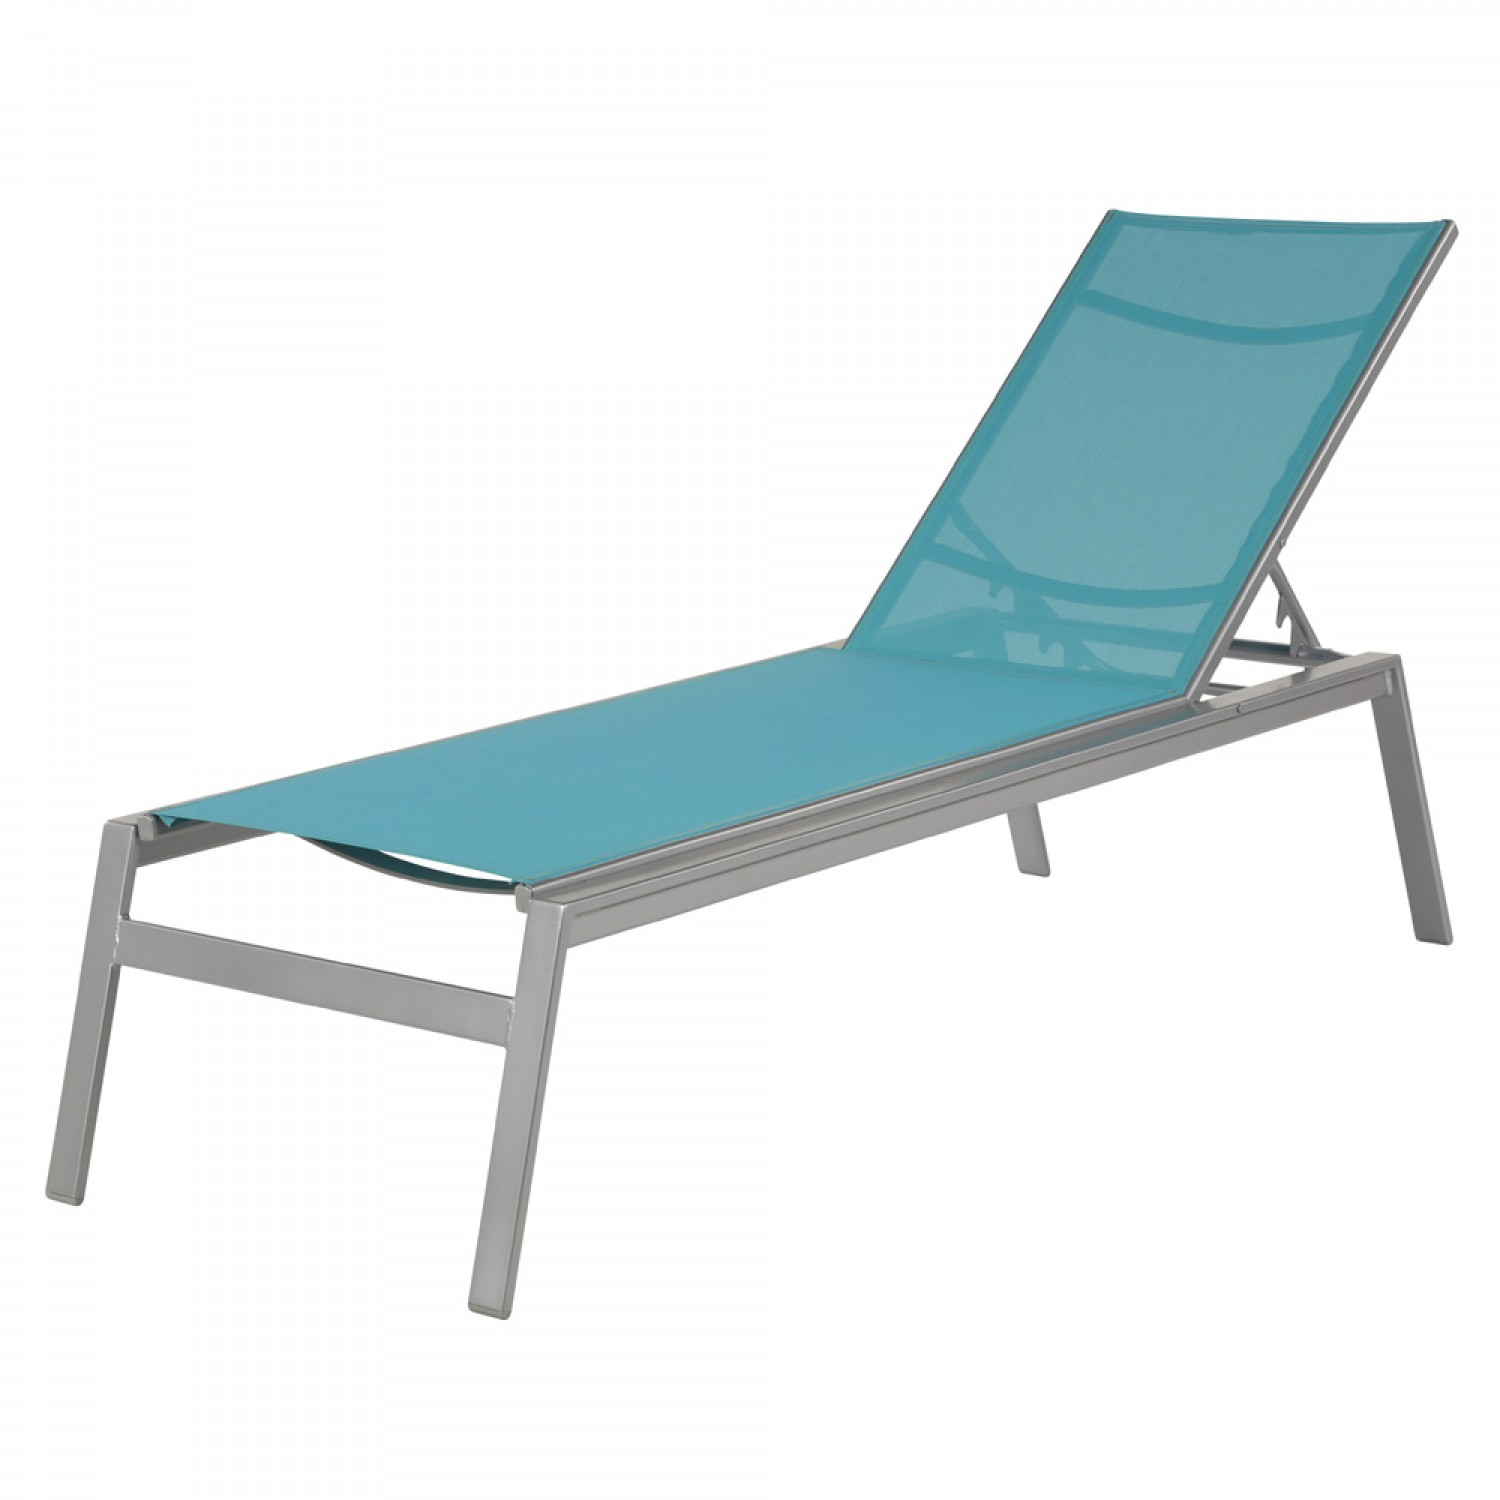 Skyway Outdoor Chaise Lounger